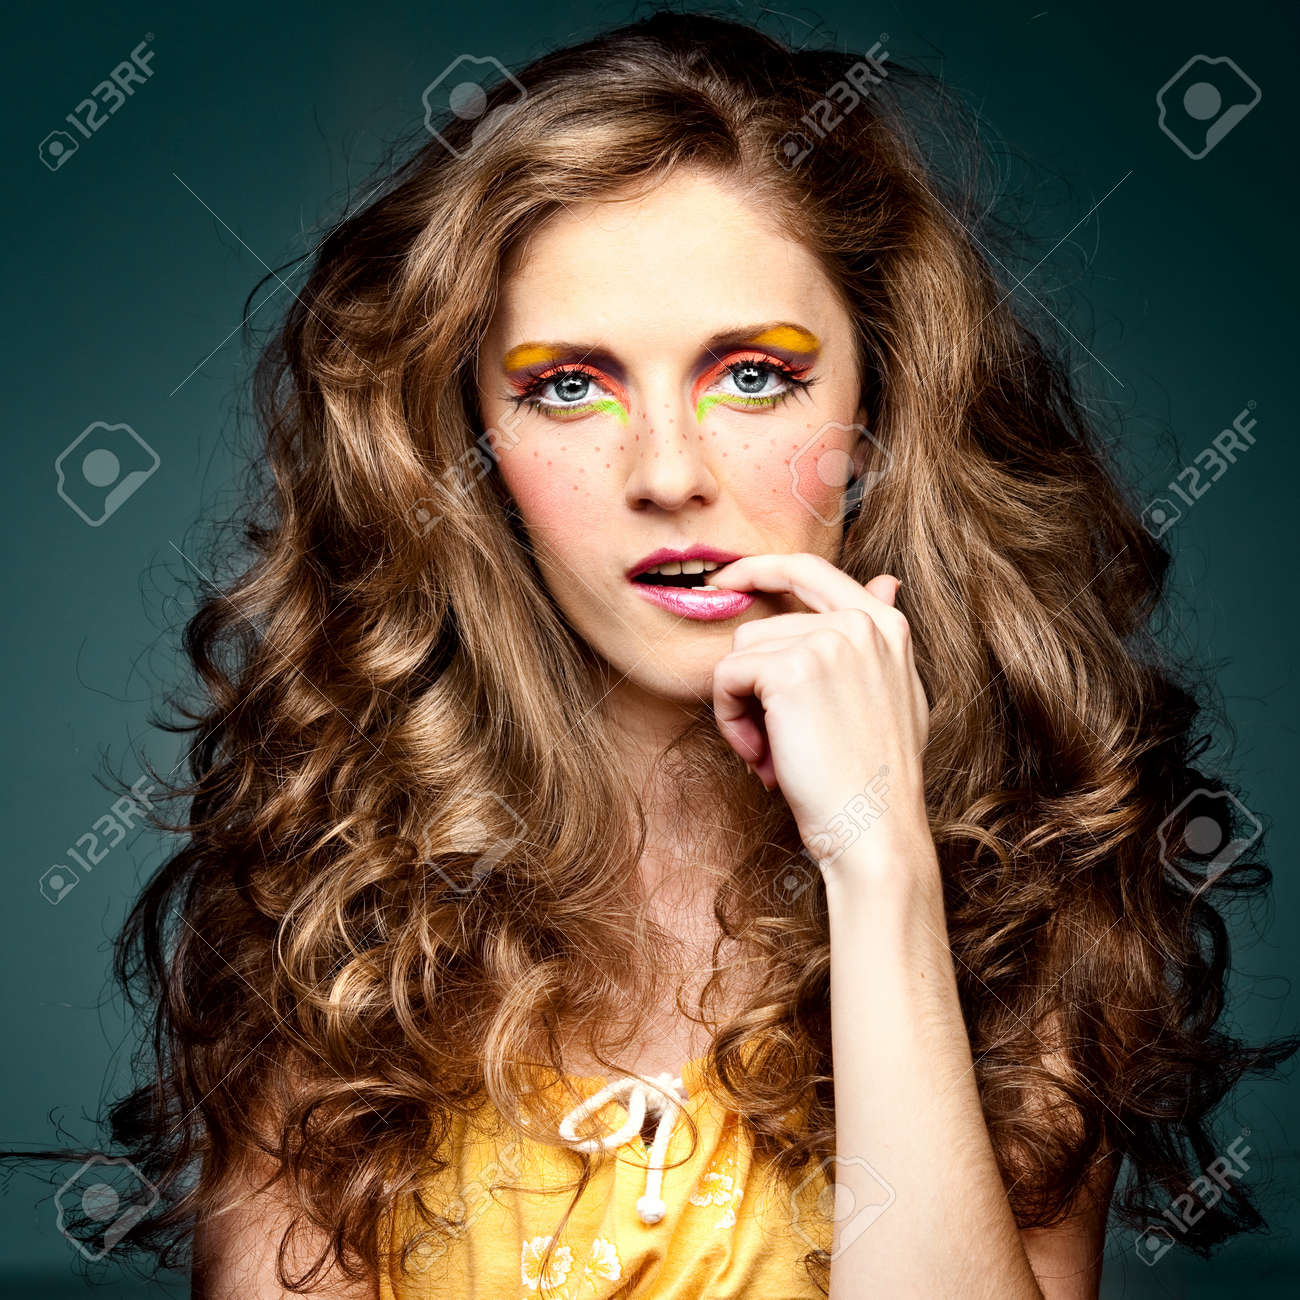 a studio portrait of a young woman with long, blonde and wavy hair and blue eyes. her make-up is very colorful; it is inspired by the '60s style and she has freckles drawn on her cheeks. she has one hand up to her face and one finger in her mouth, which g Stock Photo - 8259373